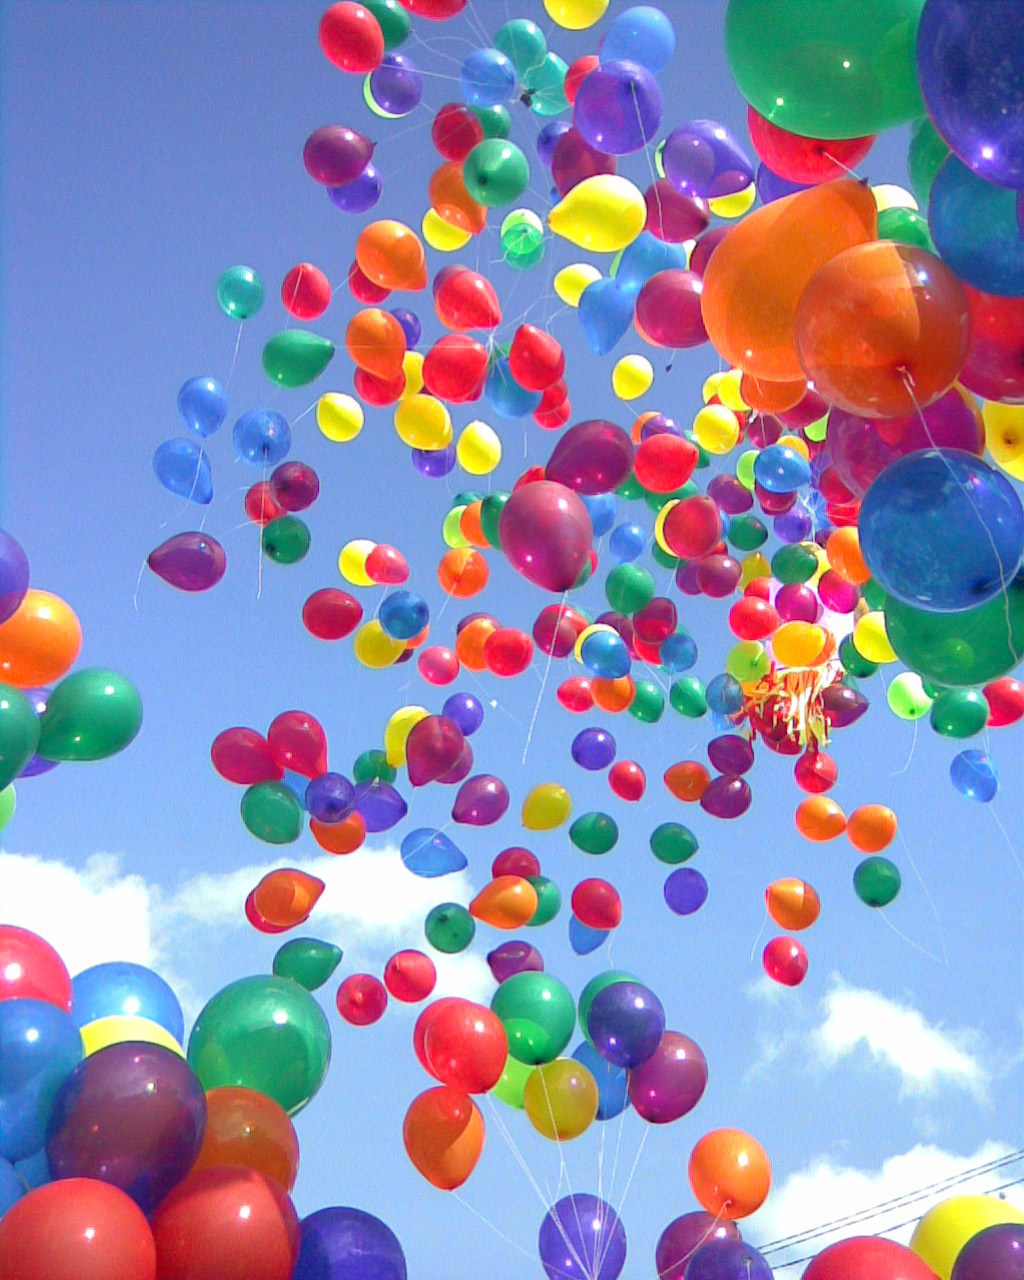 http://images4.fanpop.com/image/photos/16700000/Colorful-balloons-to-make-you-happy-teddybear64-16736094-1024-1280.jpg